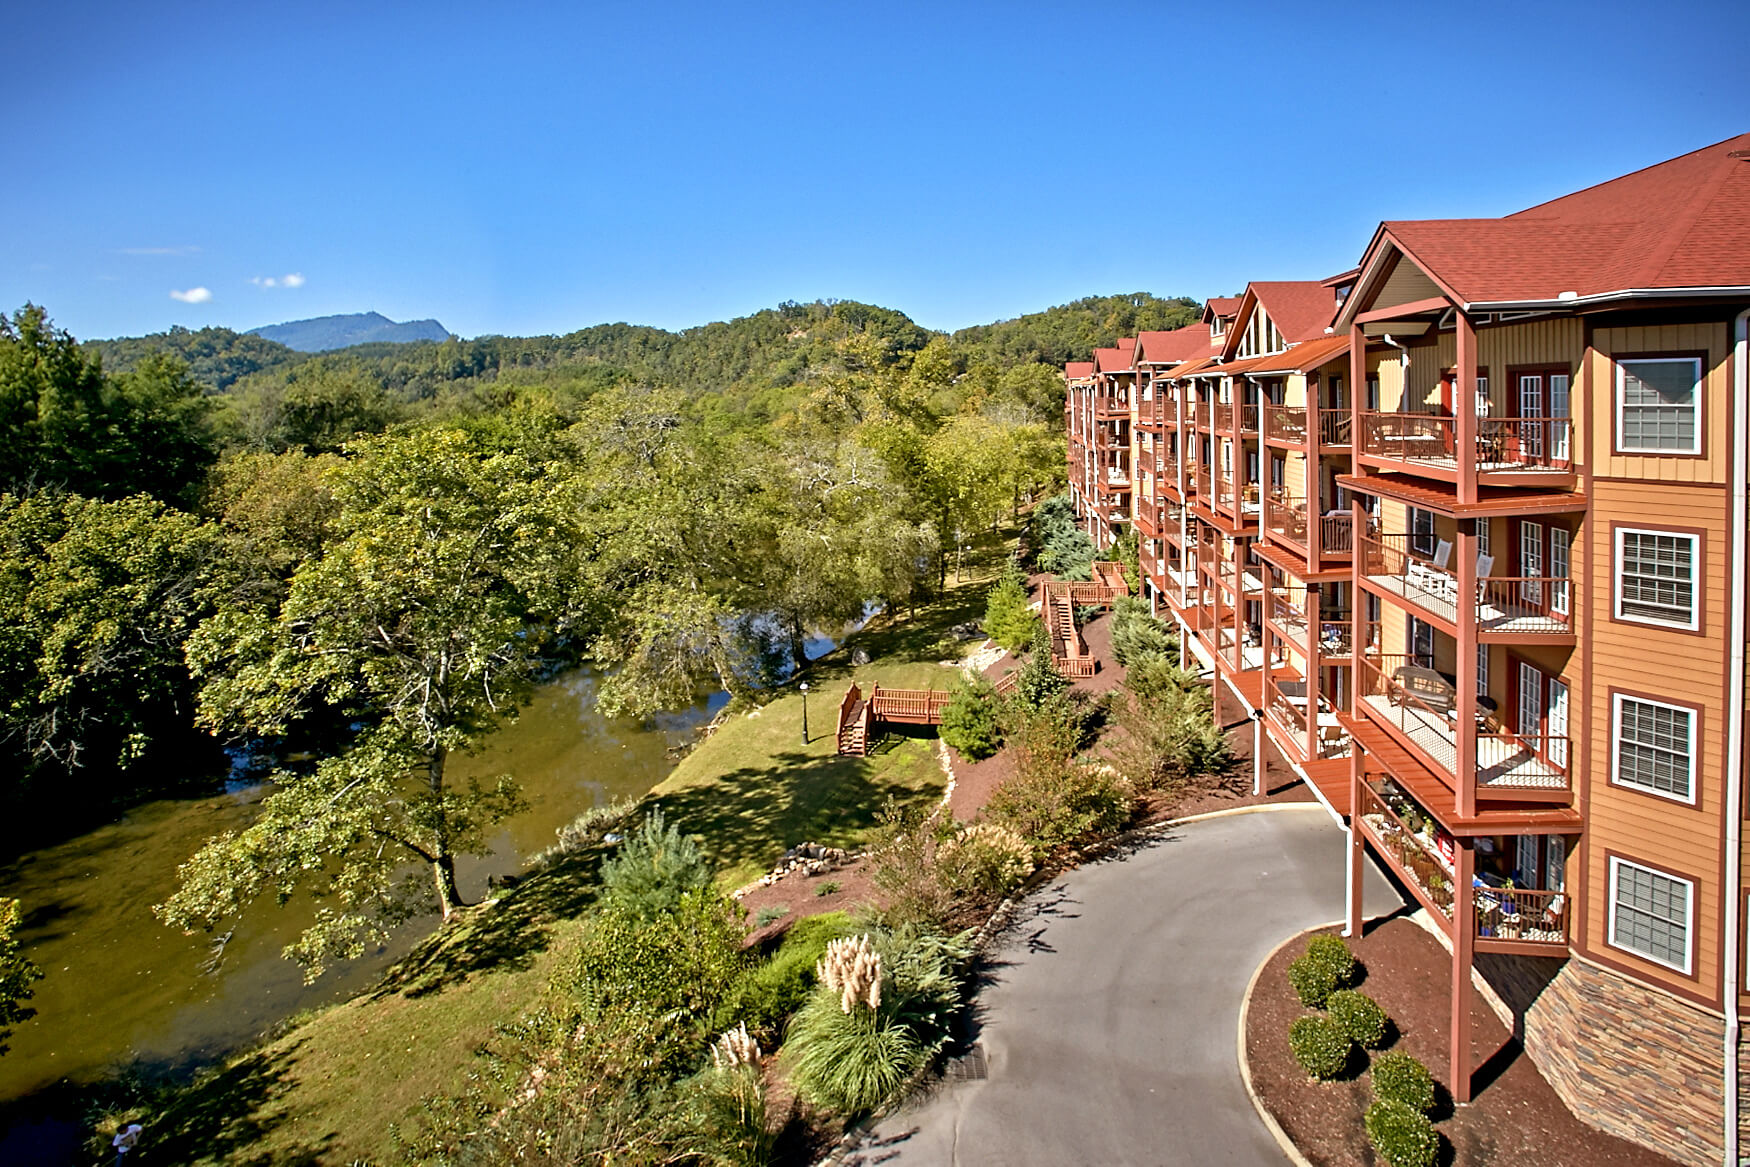 Spectacular views of the Little Pigeon River and Bluff Mountain from the Appleview River Resort condos near Pigeon Forge TN.